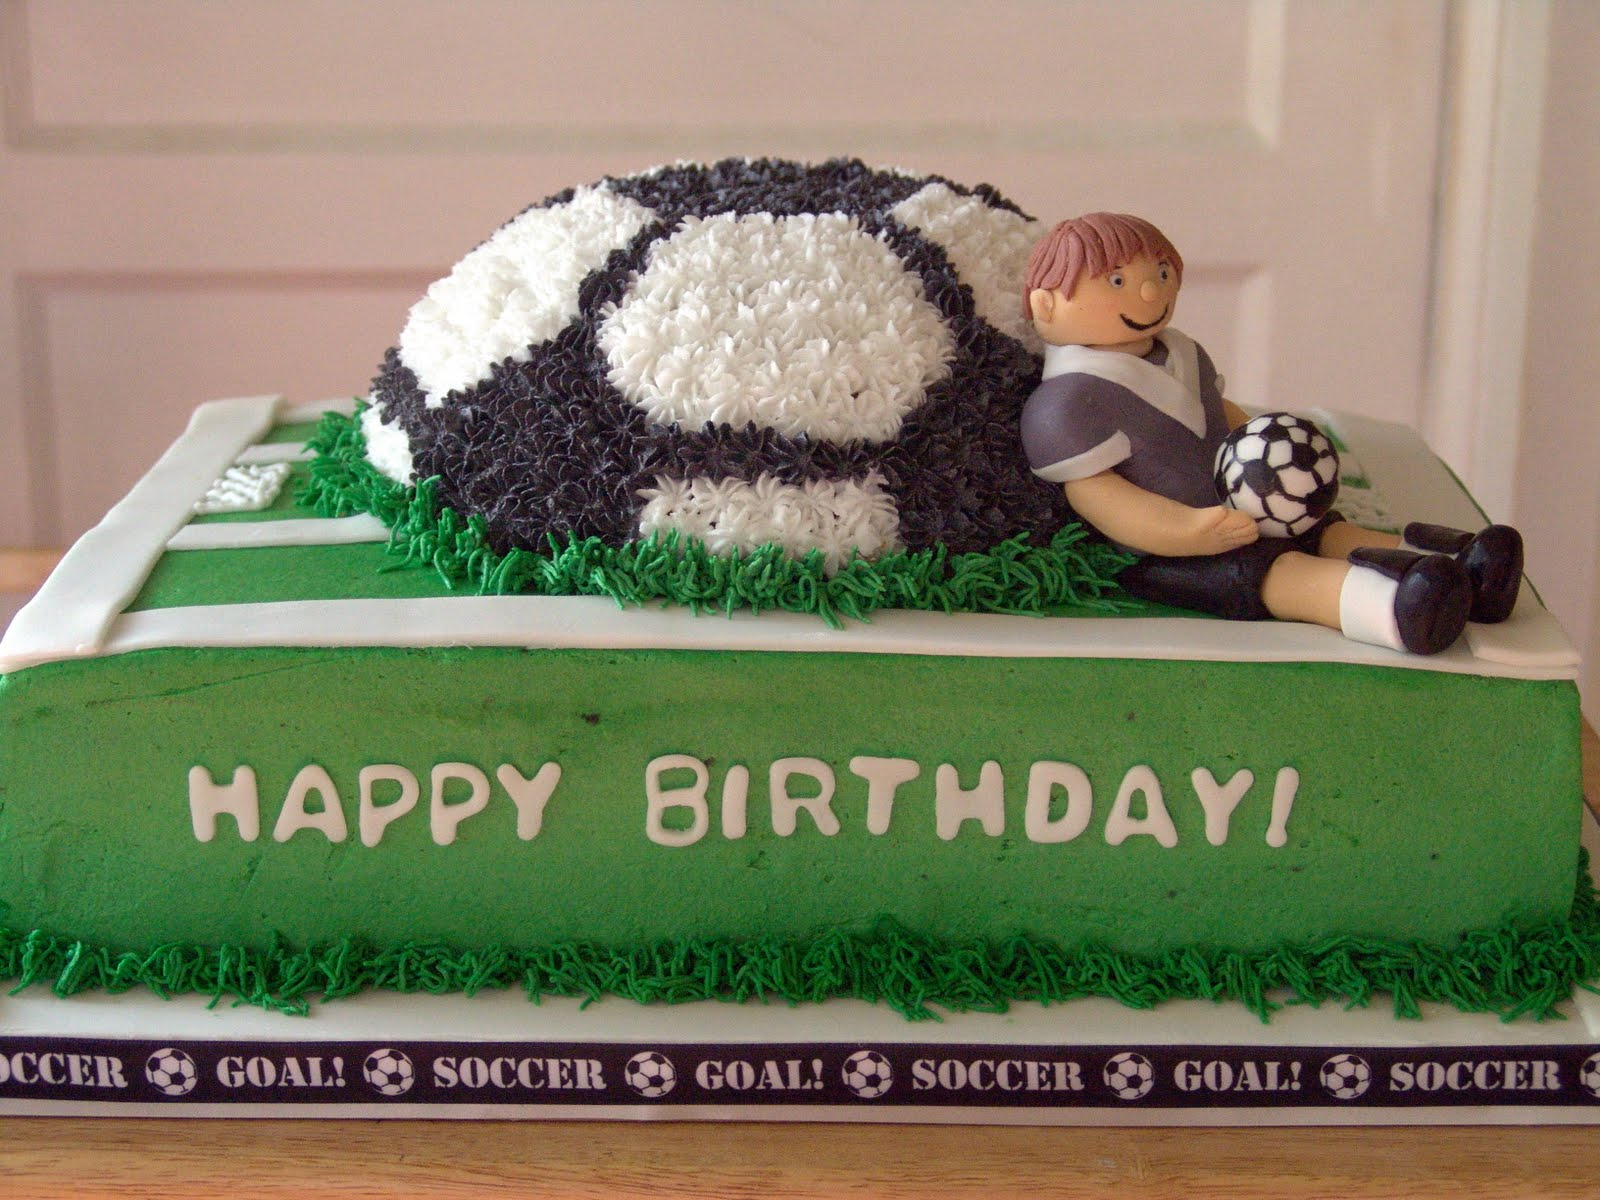 Soccer Birthday Cakes Pictures The Best Cake Of 2018